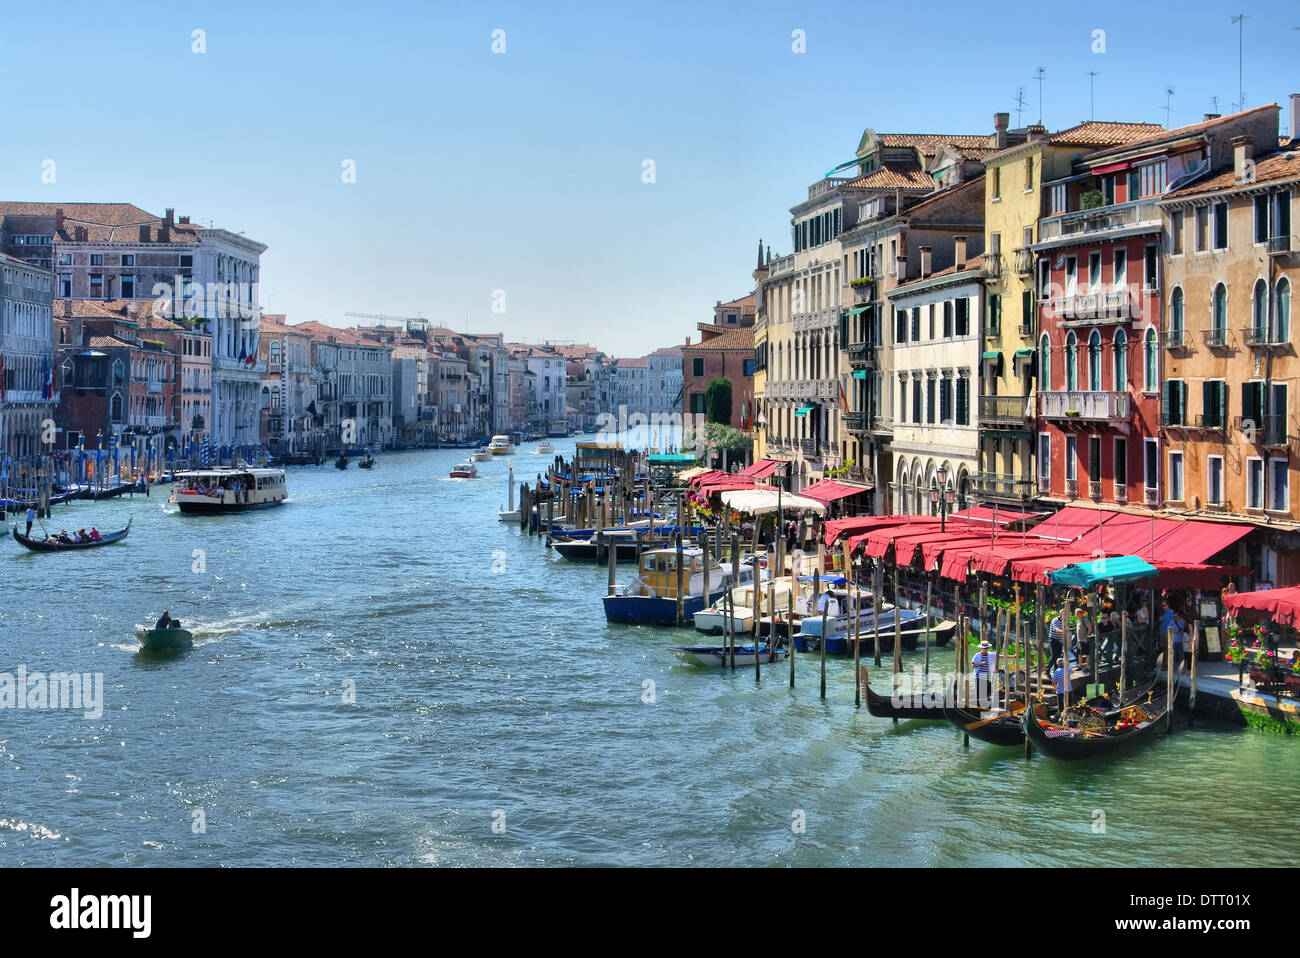 venedig kanal grande venice canal grande 01 stock photo royalty free image 66909750 alamy. Black Bedroom Furniture Sets. Home Design Ideas